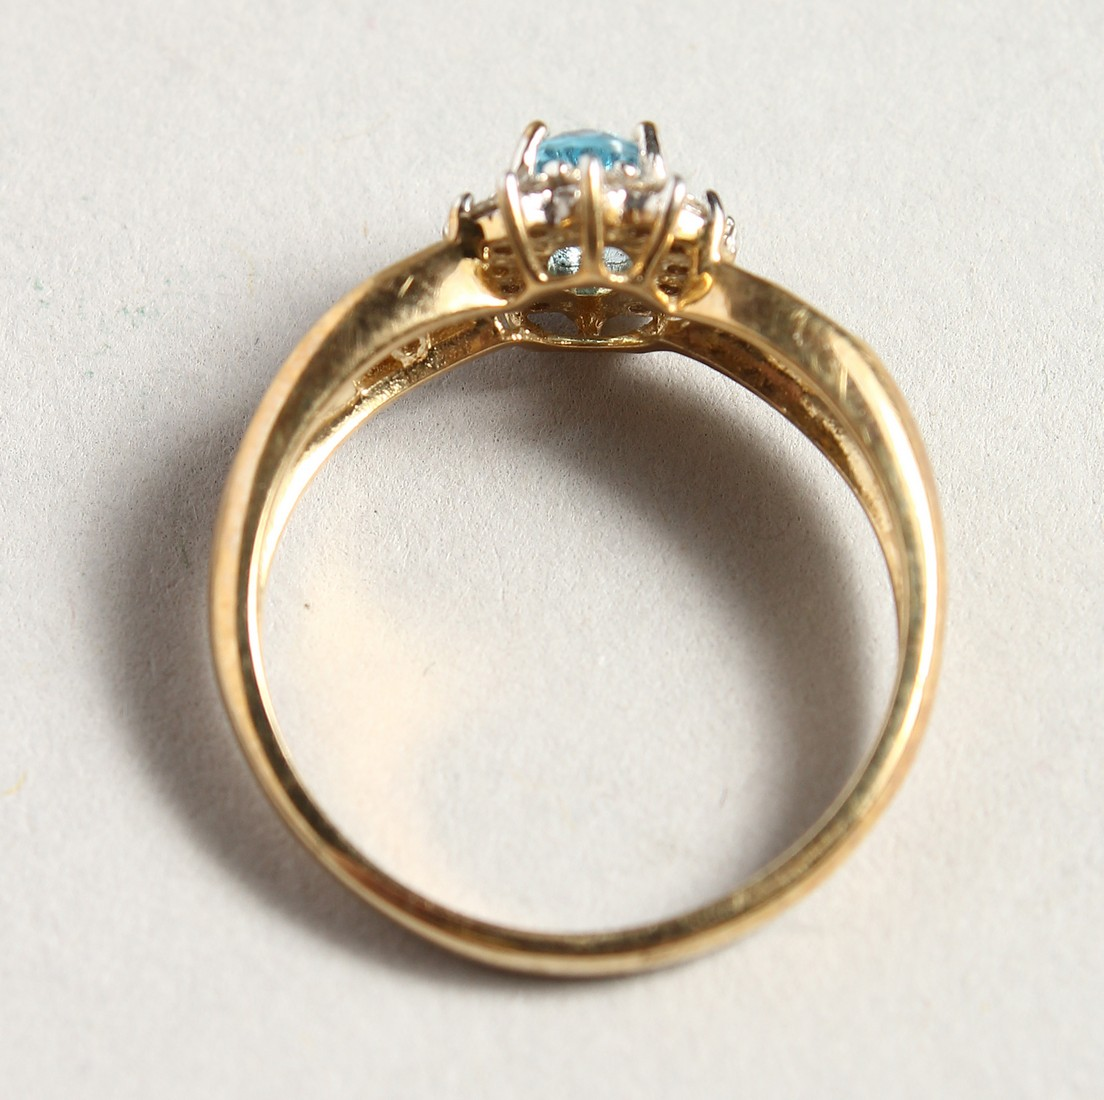 A 9CT GOLD BLUE TOPAZ AND DIAMOND CLUSTER RING - Image 4 of 5